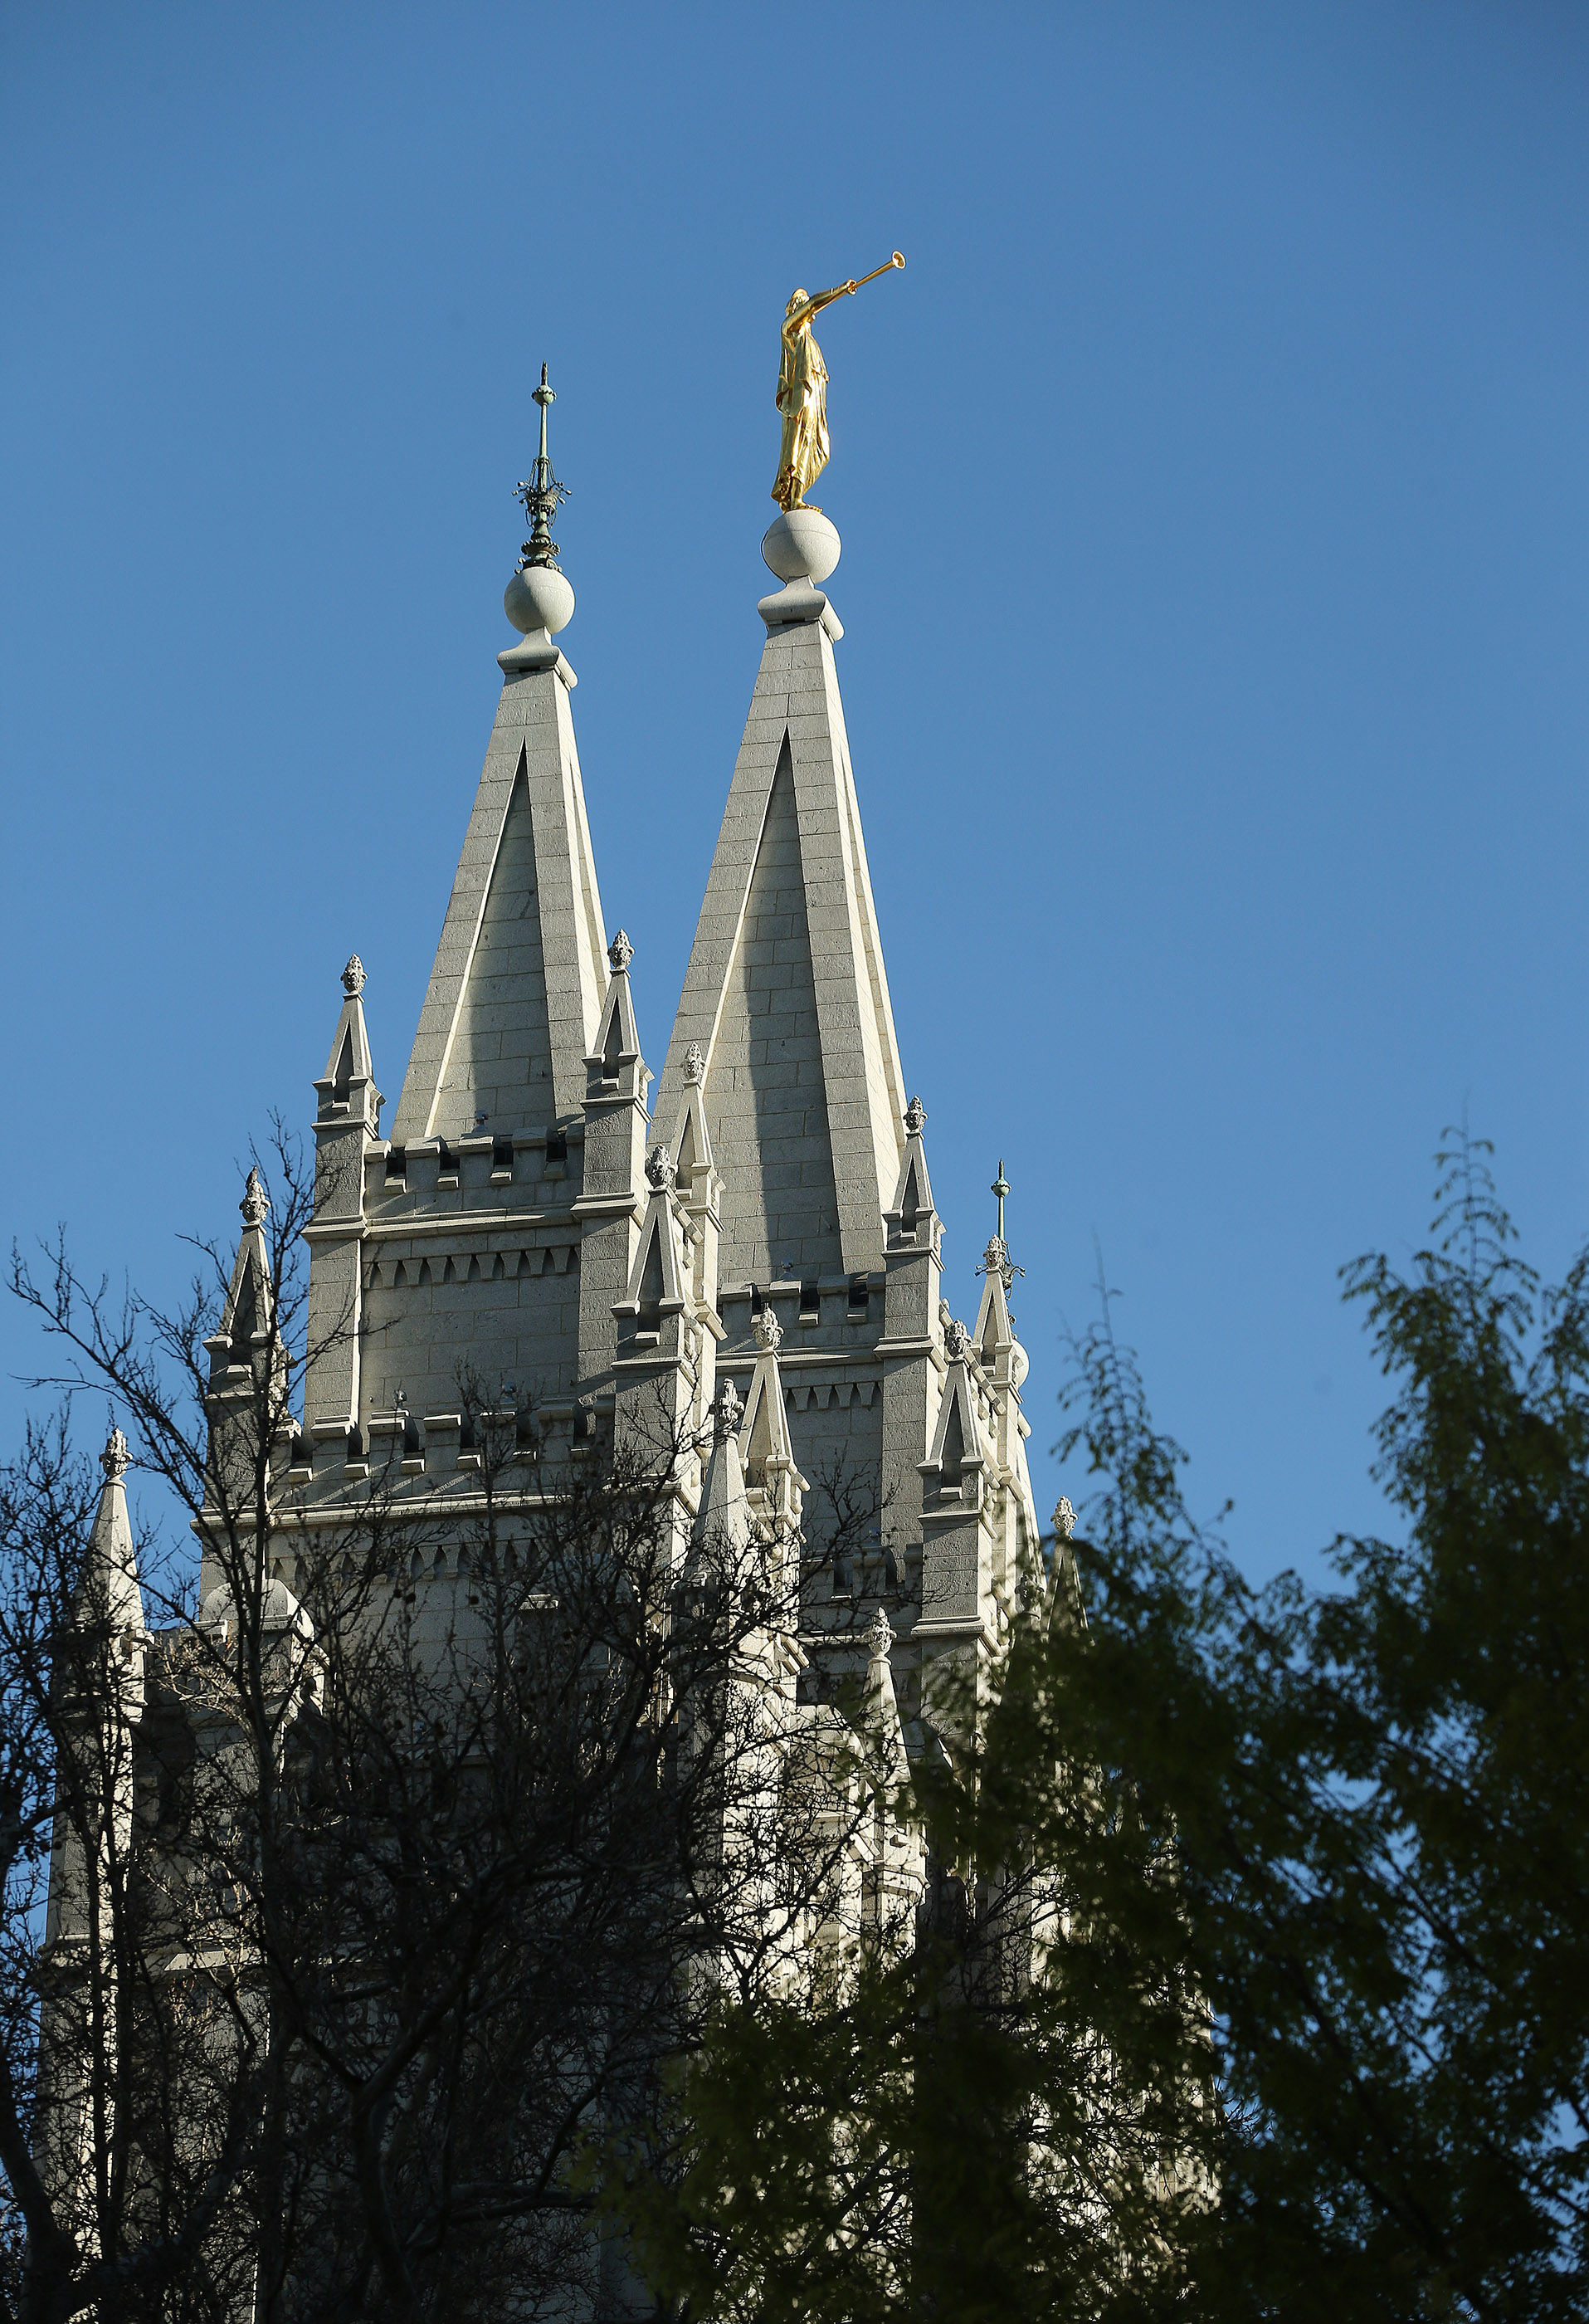 The Salt Lake Temple in Salt Lake City on Friday, April 19, 2019. Officials with The Church of Jesus Christ of Latter-day Saints announced renovation plans and changes to it and the grounds.